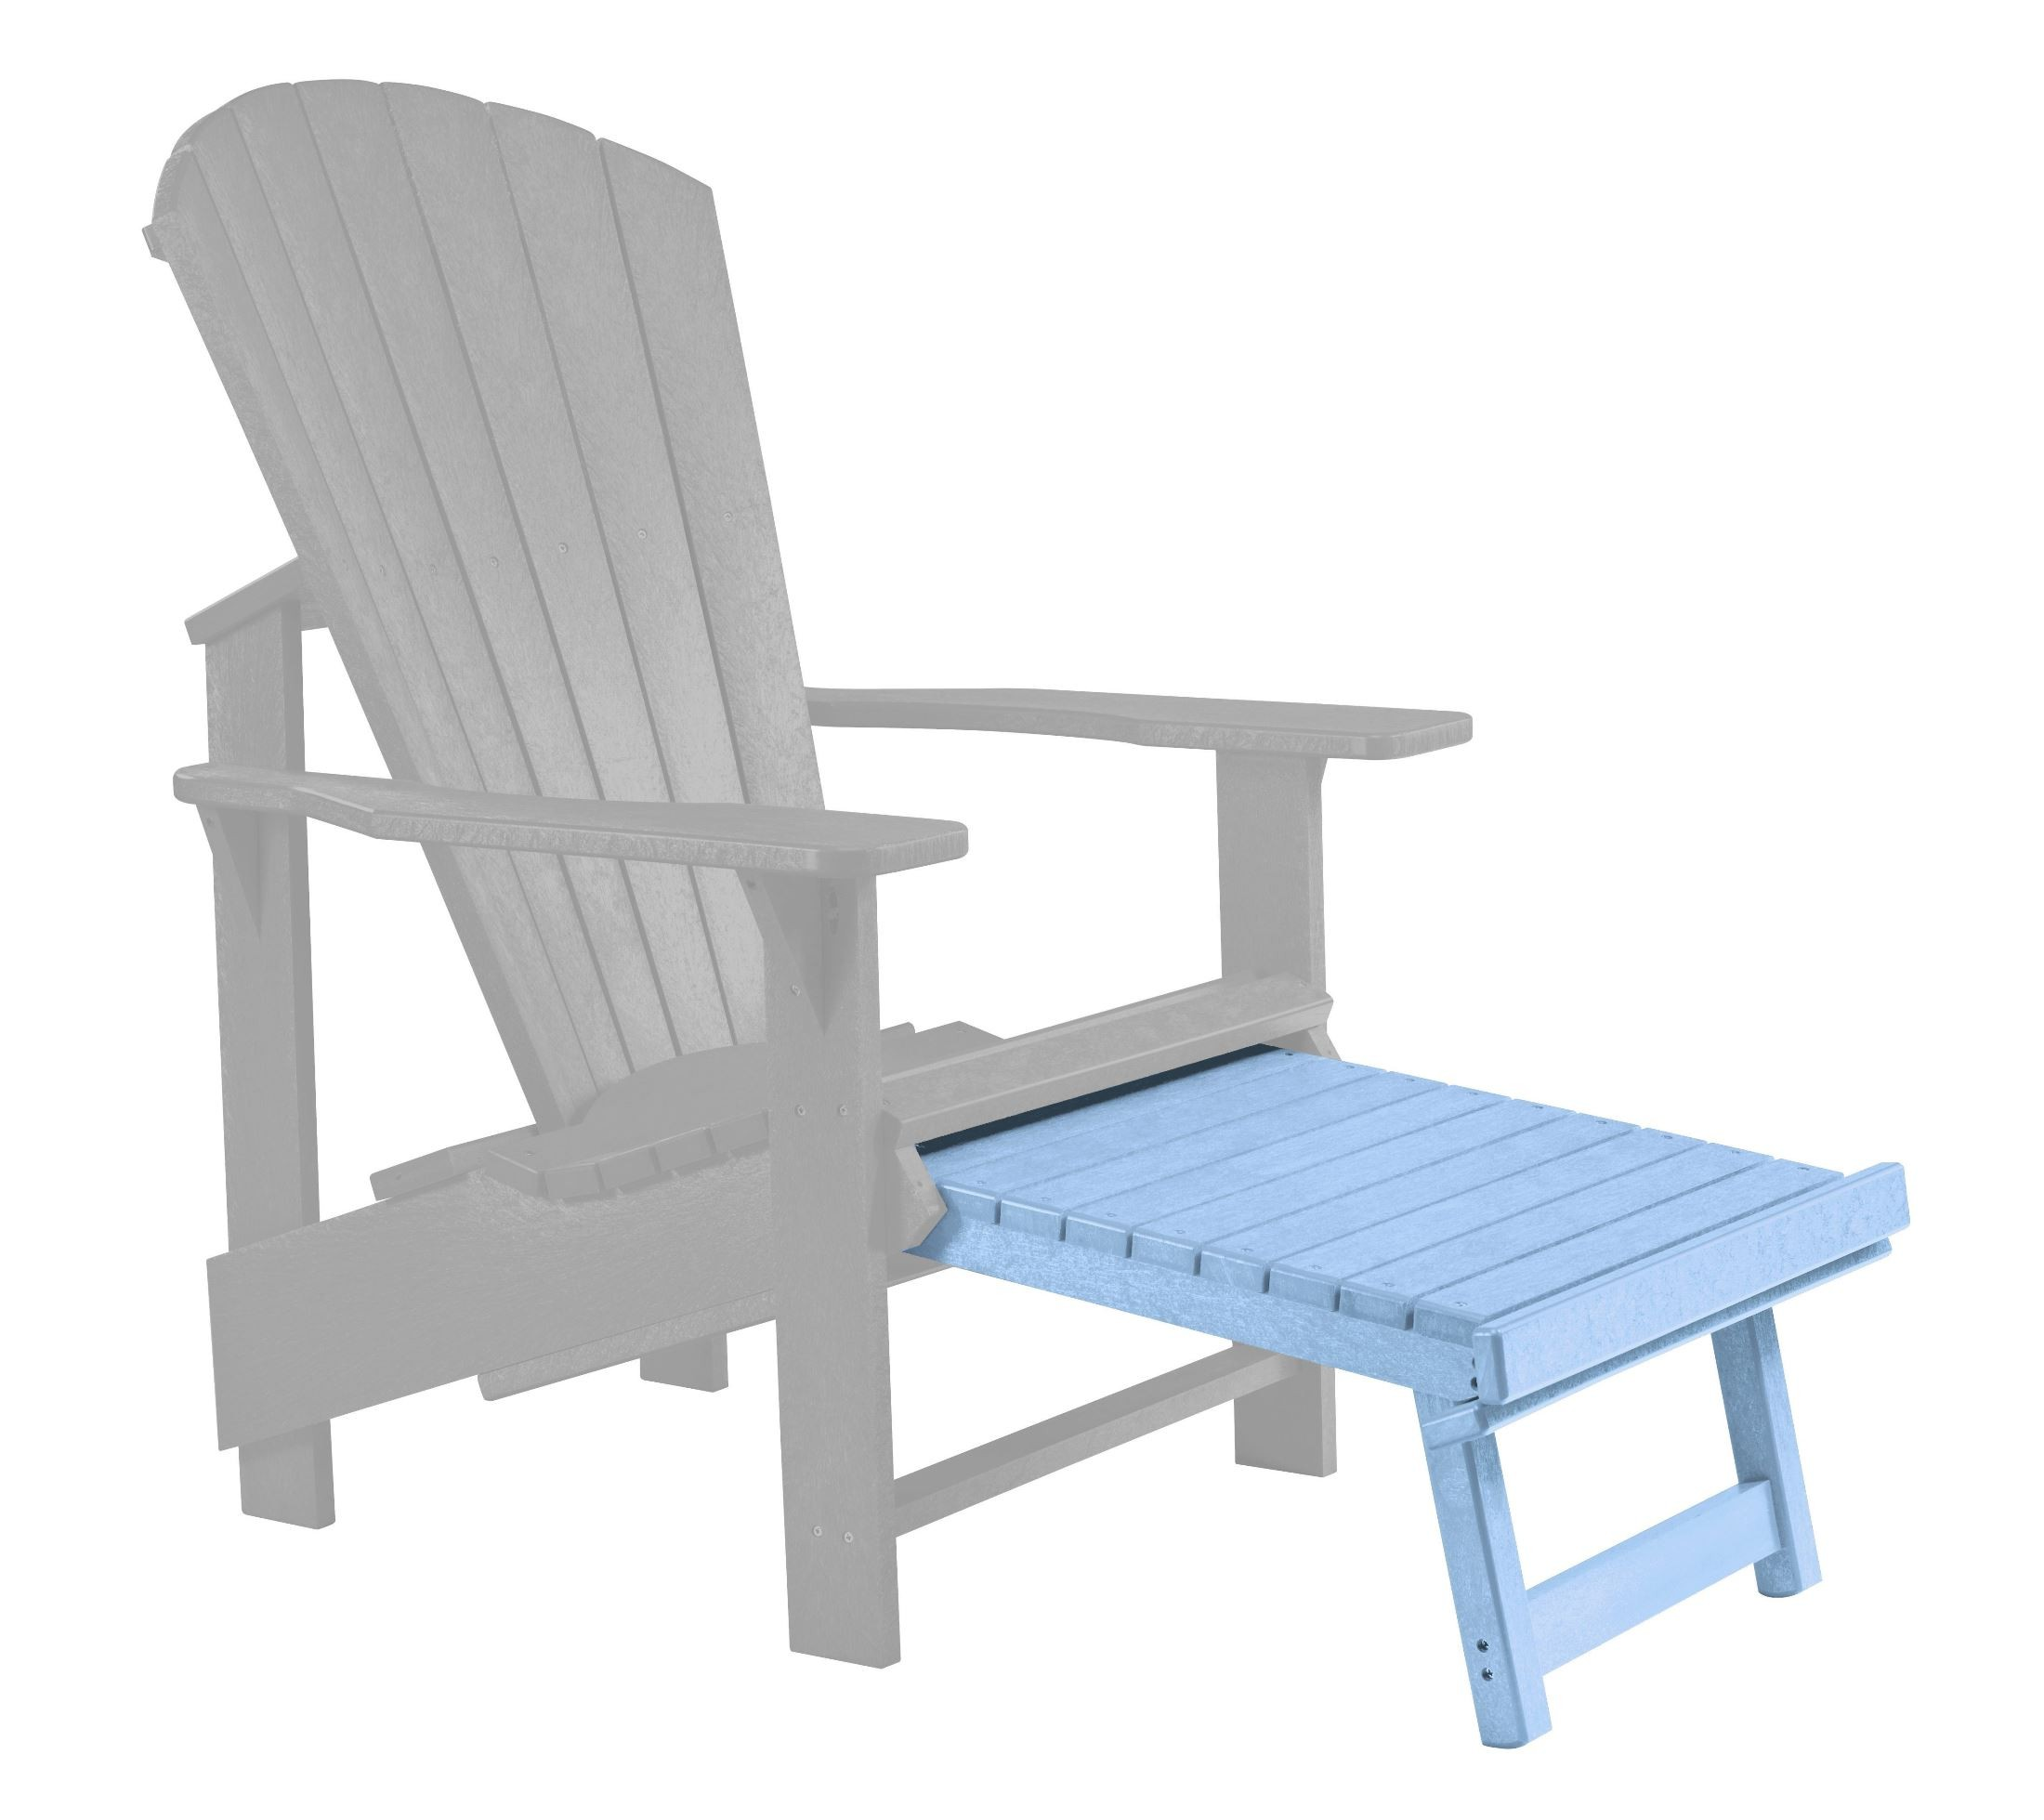 Blue Adirondack Chair Generations Sky Blue Upright Adirondack Chair Pull Out